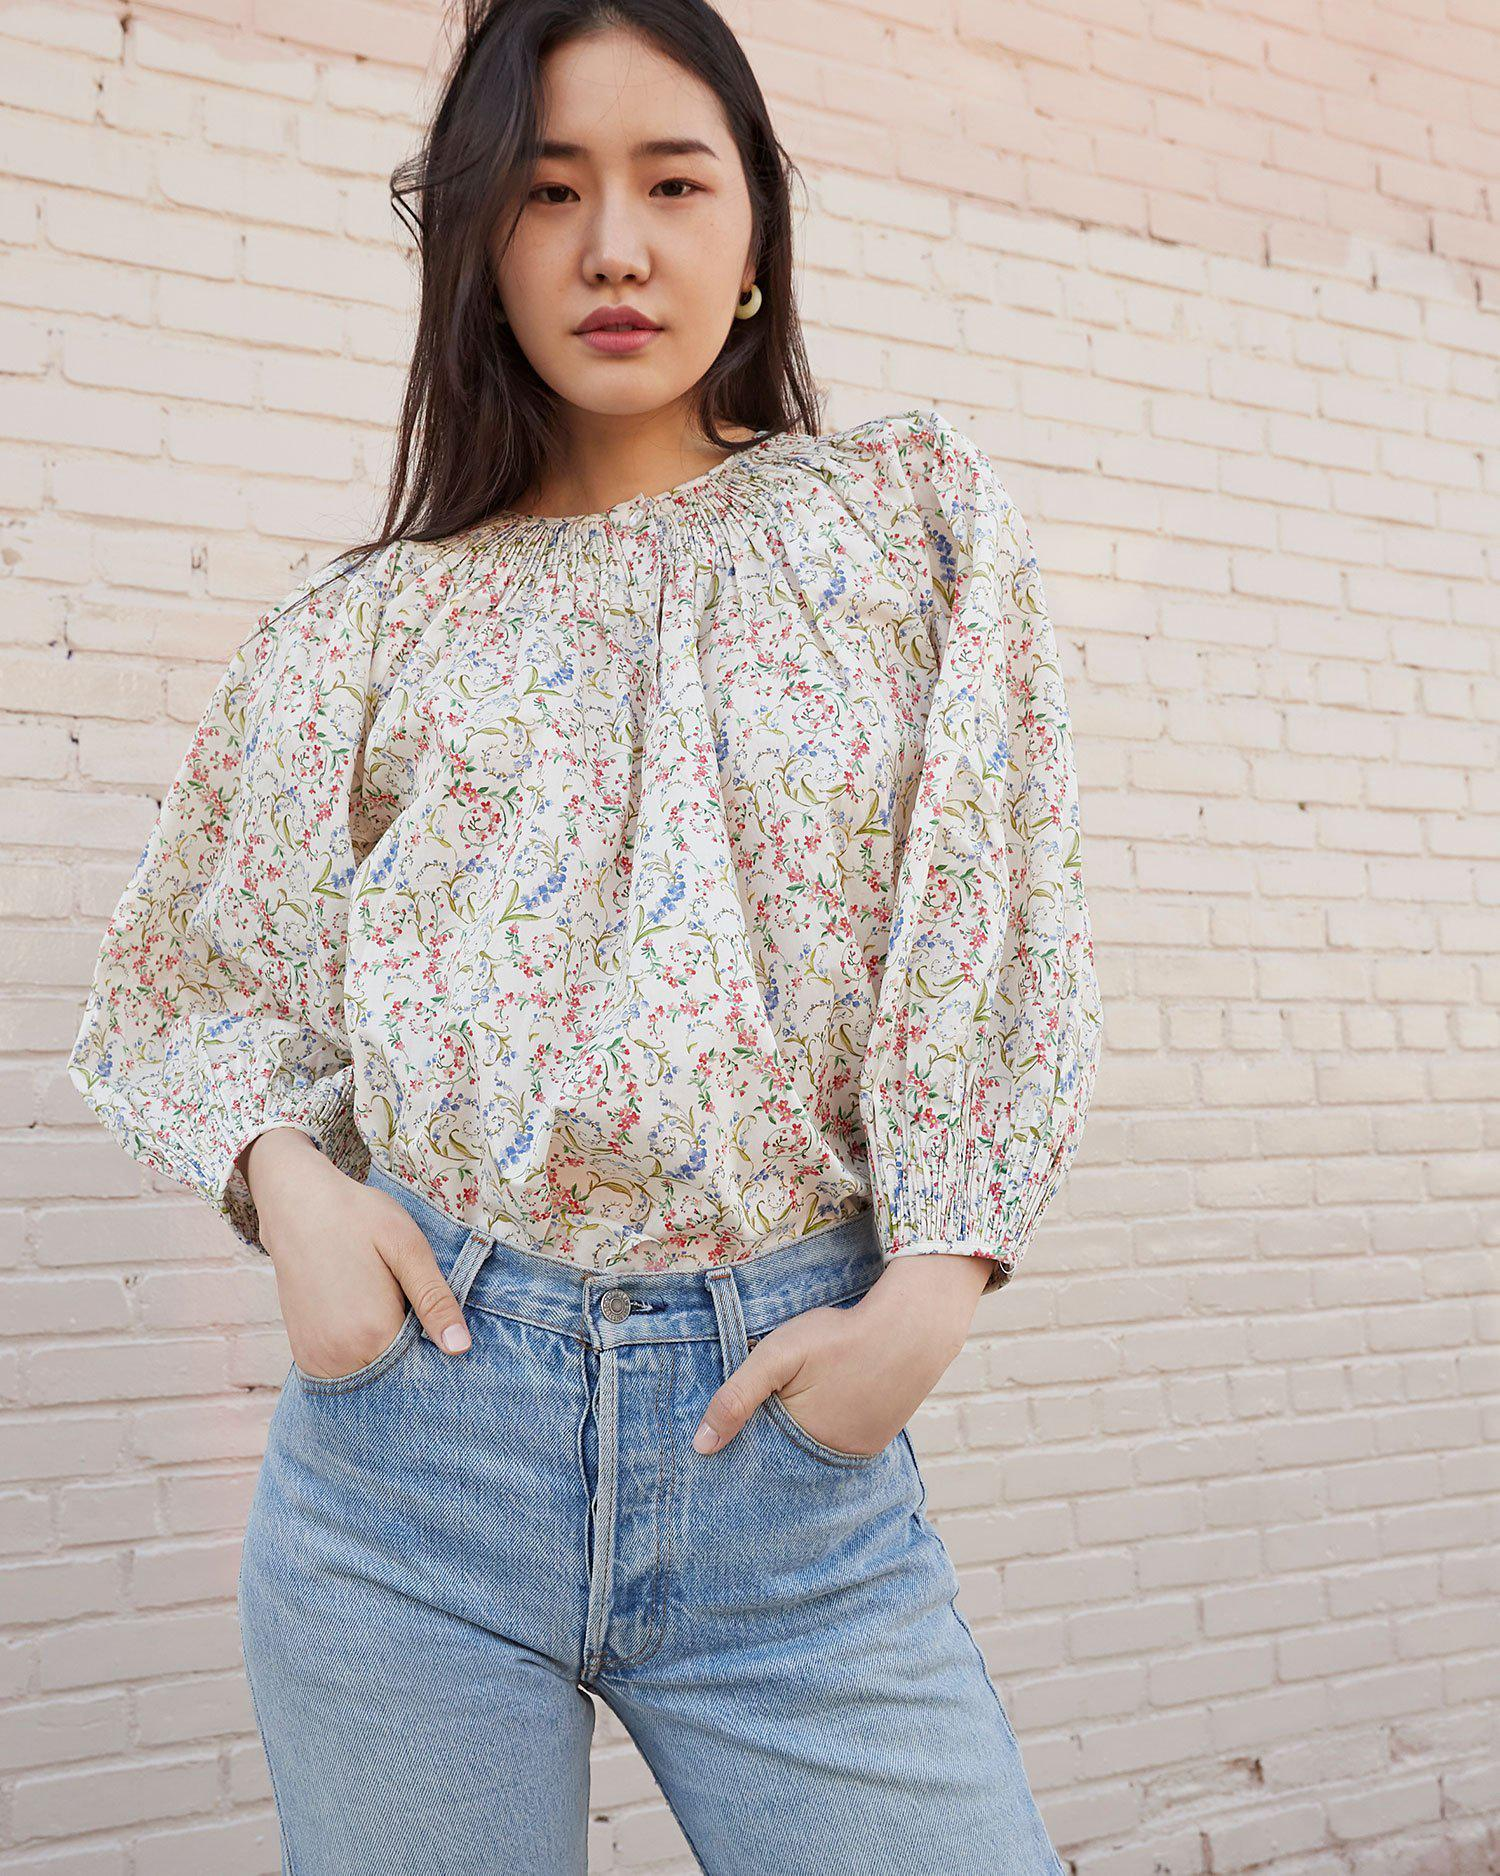 Lucia Romance Floral Smocked Blouse